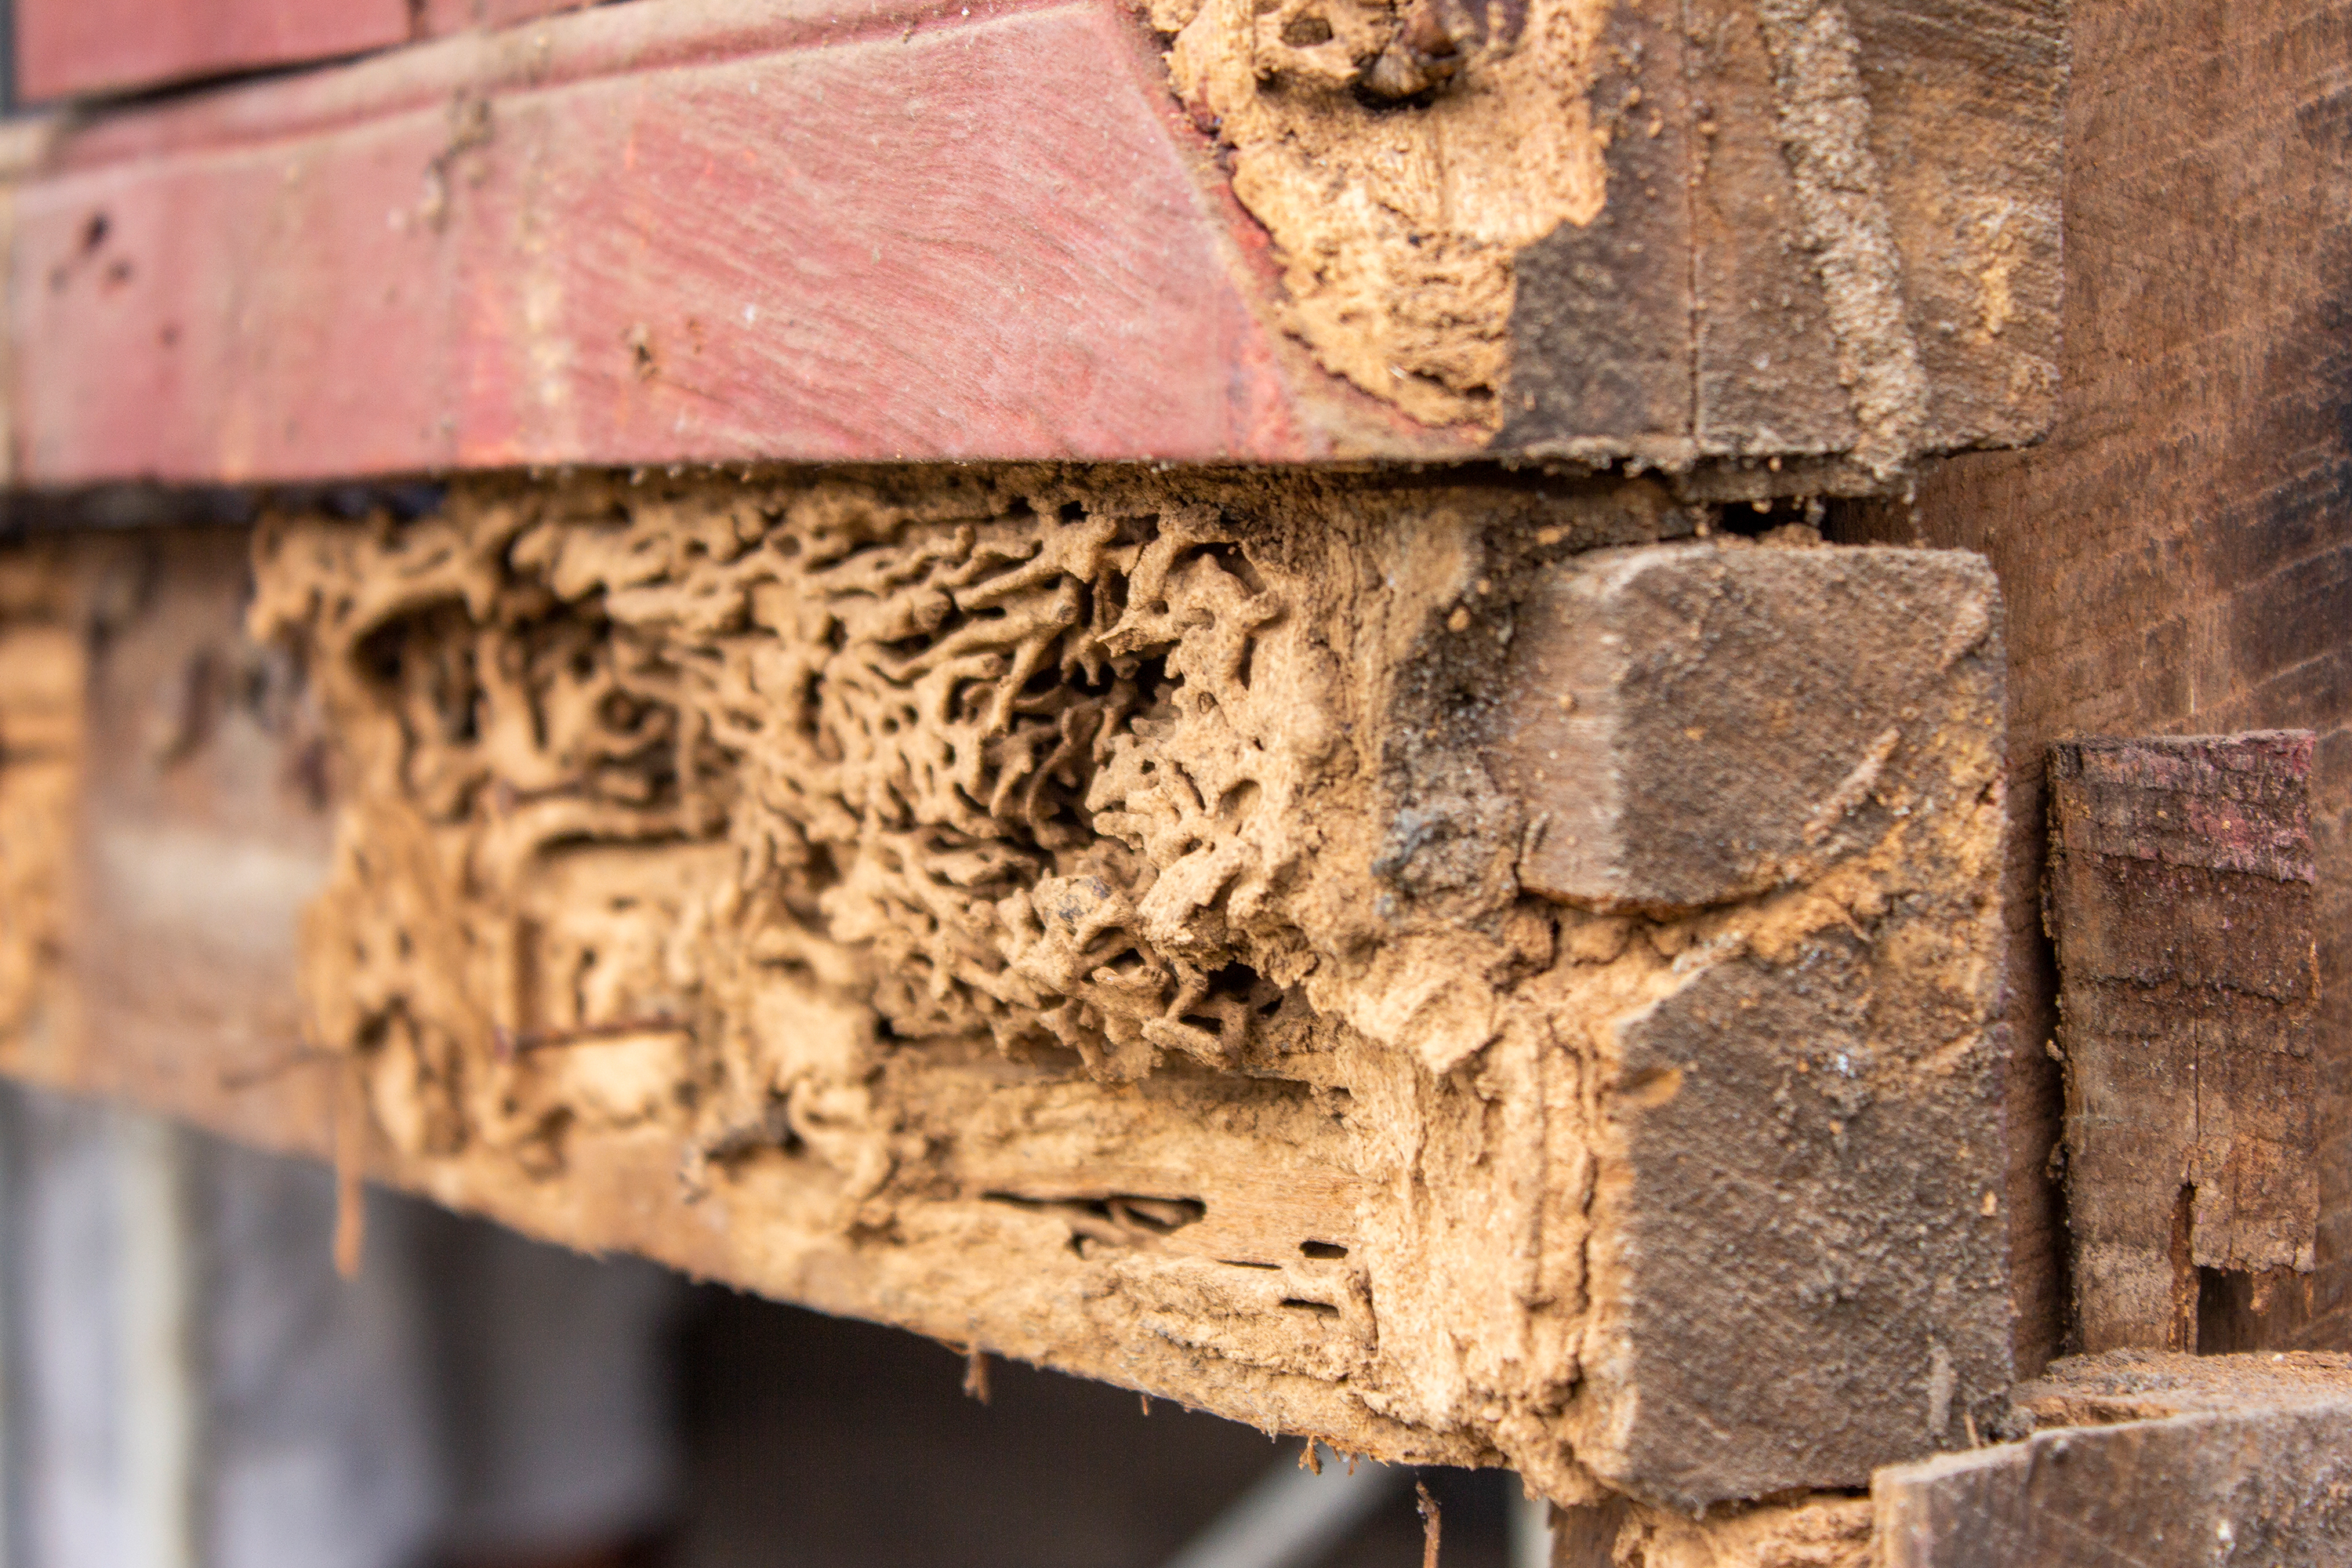 Wood rotten from termites.